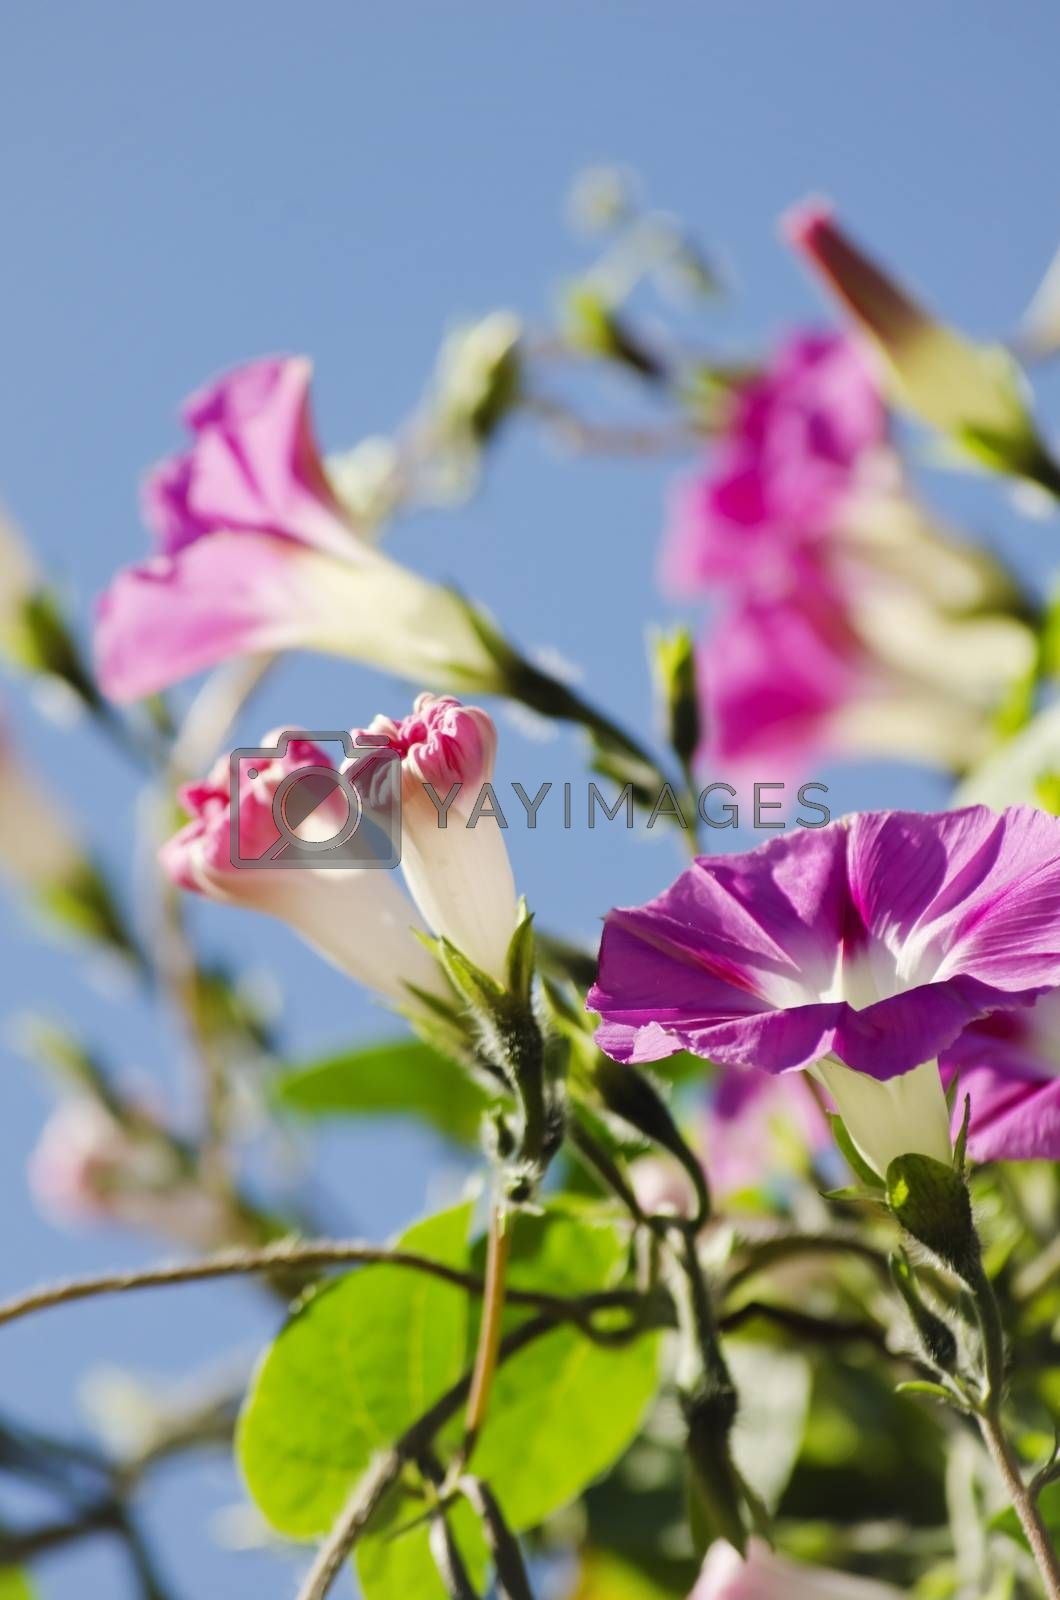 Photo Of Petunia Flower Over Natural Background